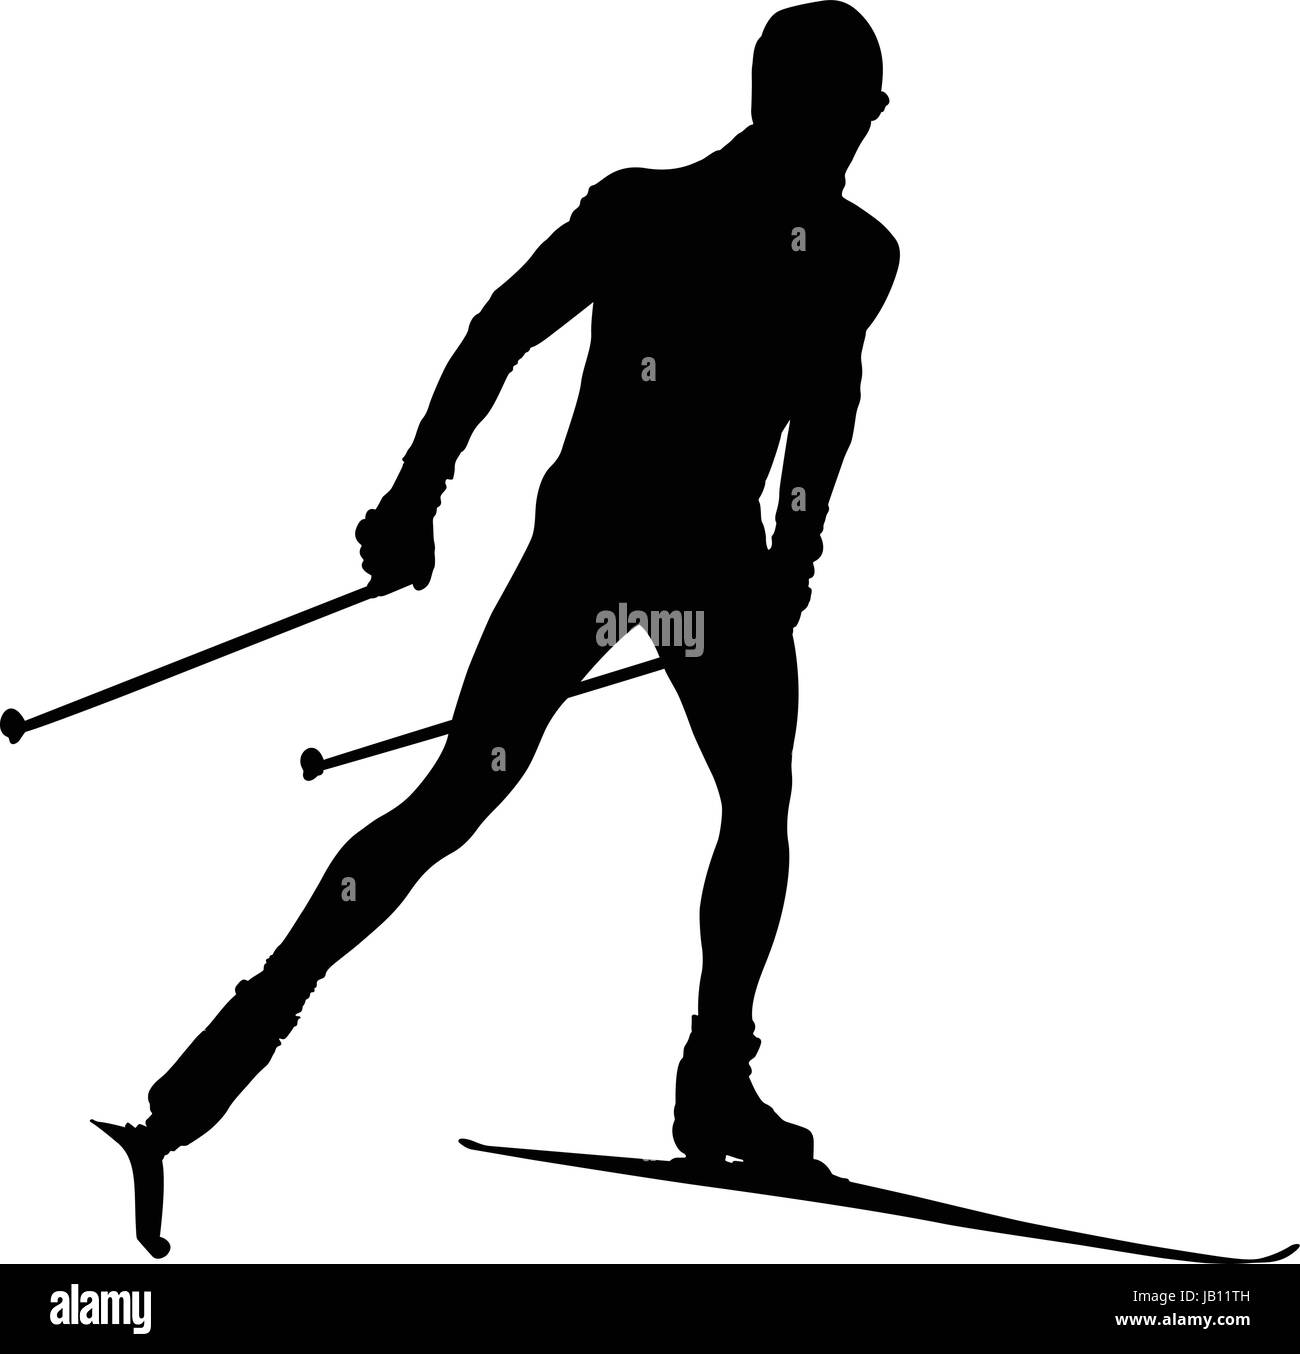 black silhouette male athlete cross country skier - Stock Vector